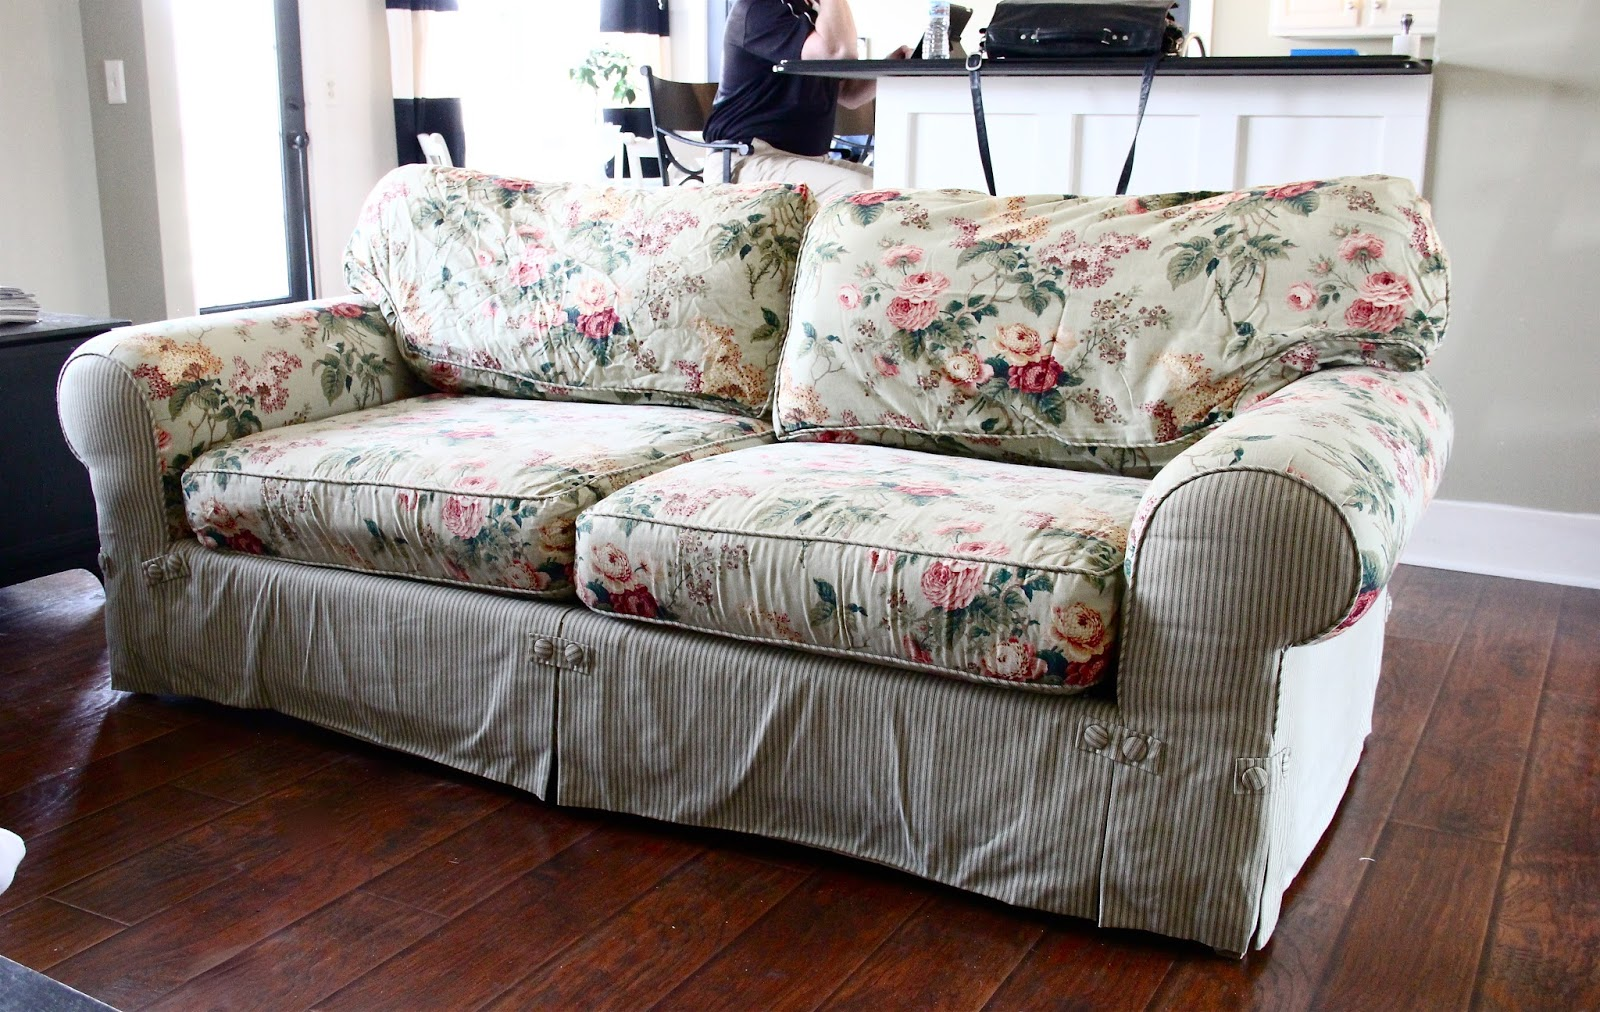 Slipcover fabric by the yard - Ten Year Old Sofa Makeover